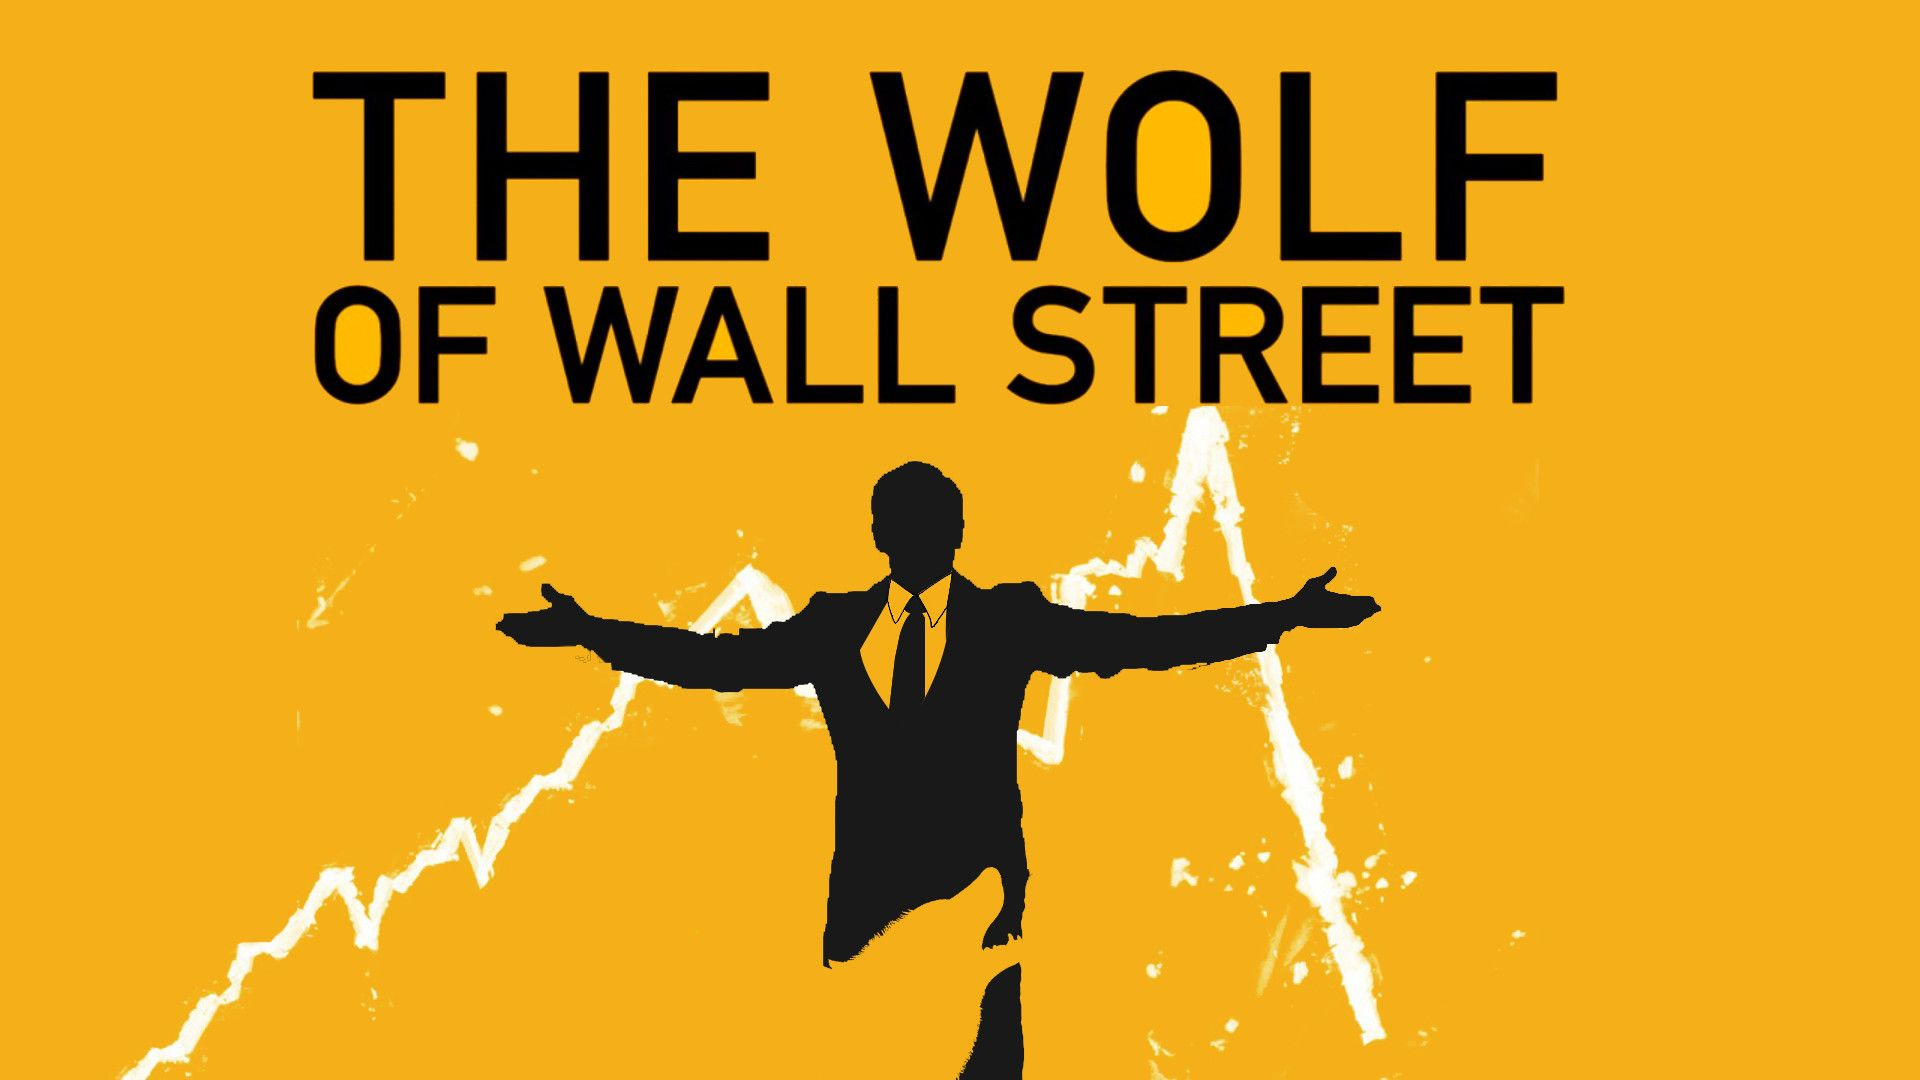 Wallstreet Wallpapers ·①